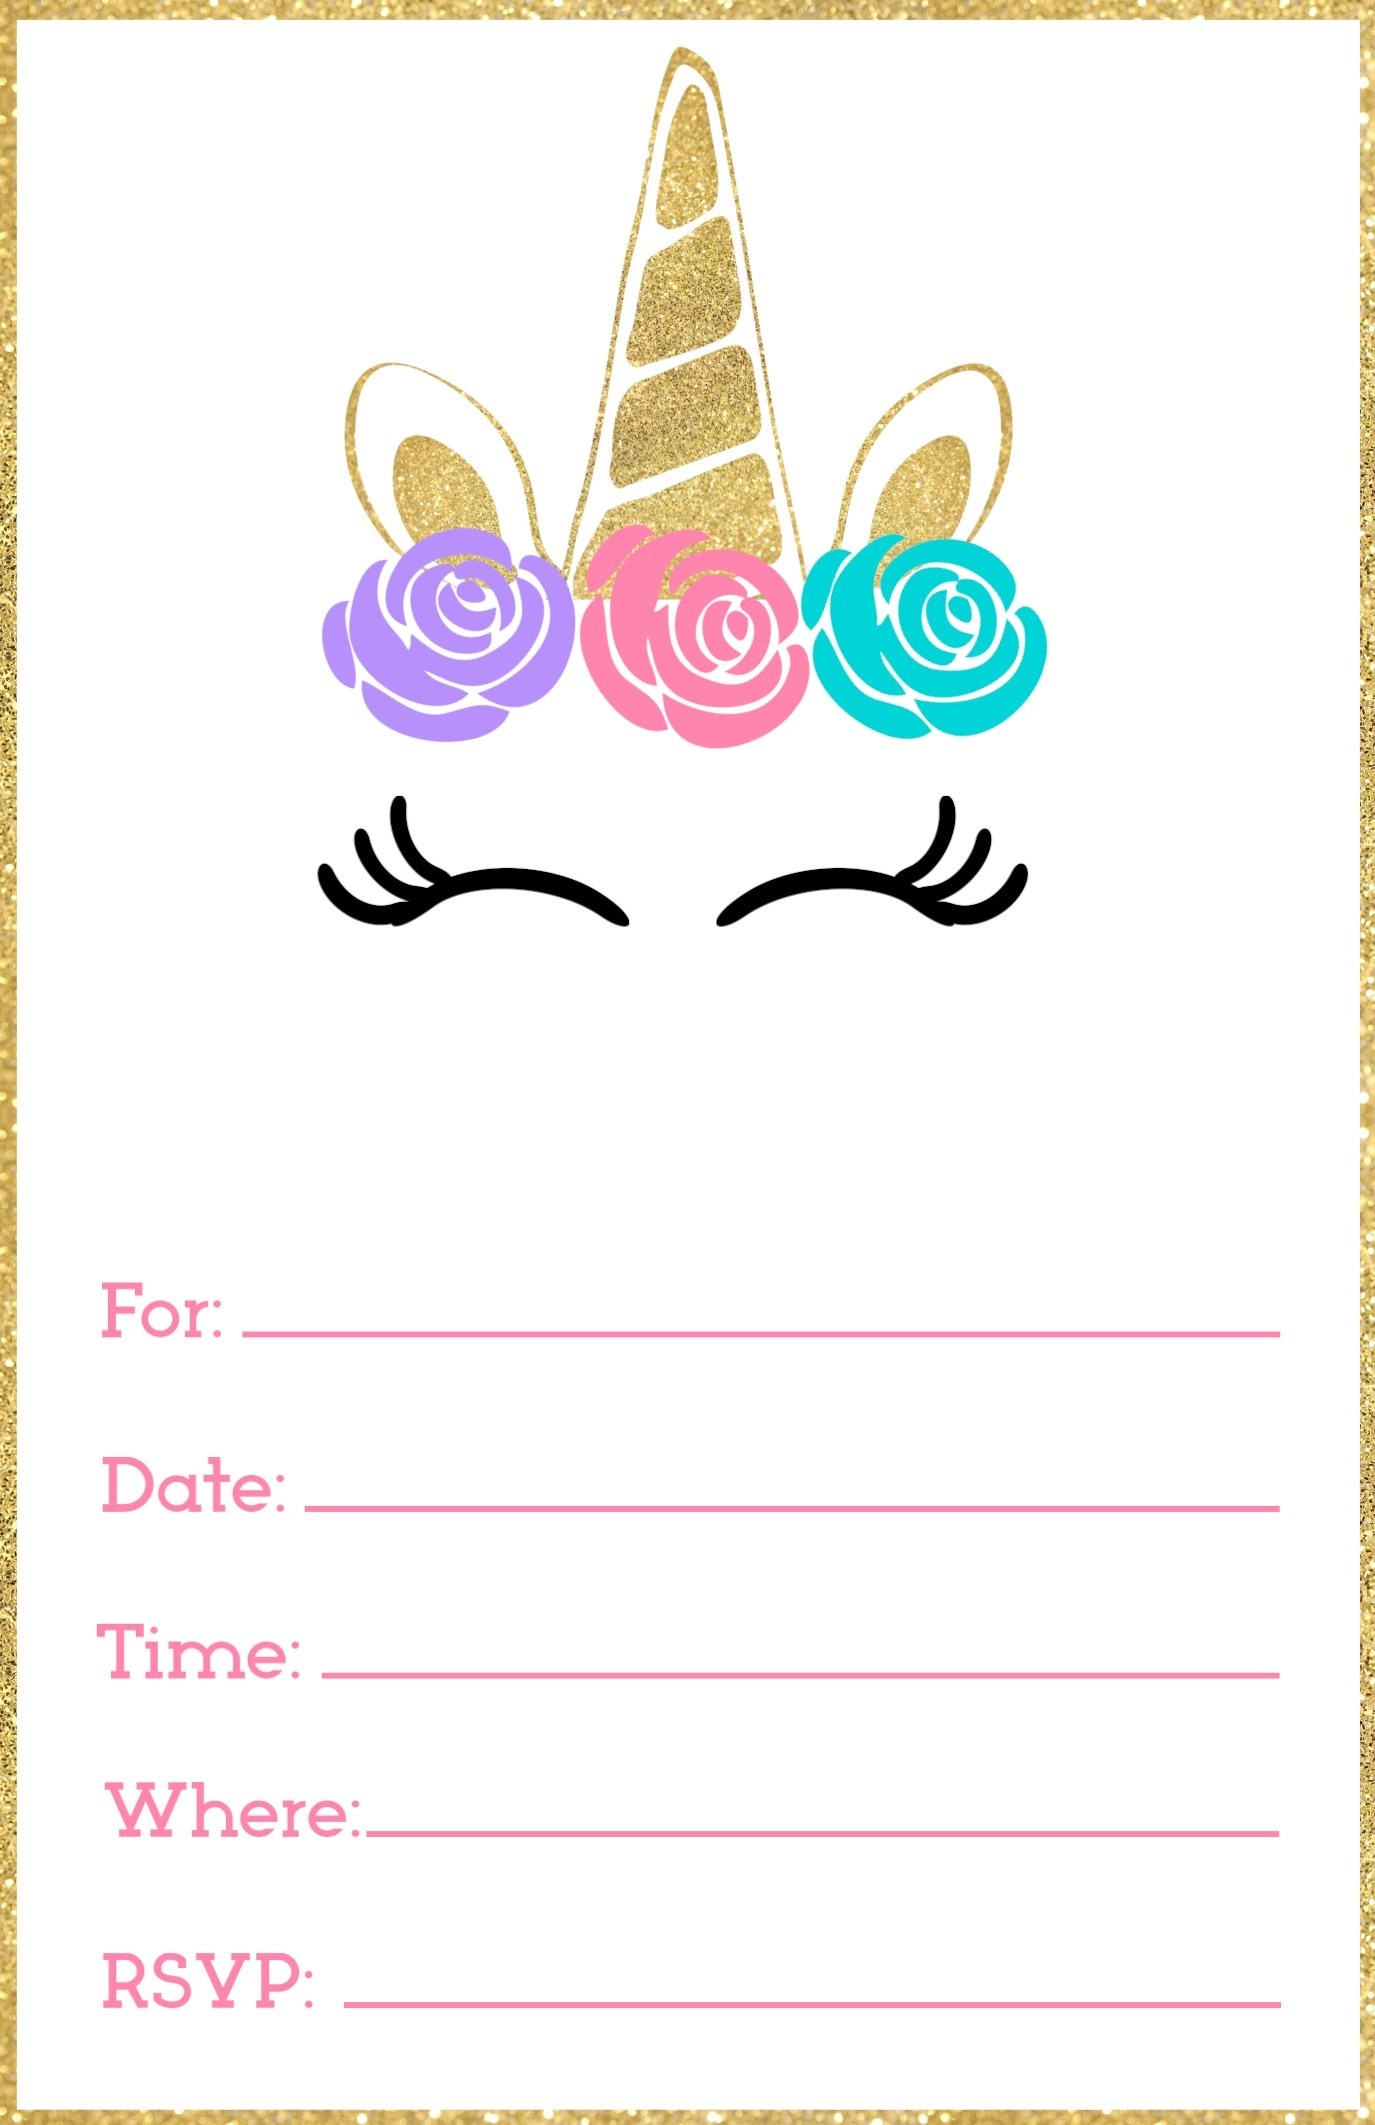 Free Printable Unicorn Invitations Template - Paper Trail Design - Free Printable Birthday Invitation Templates